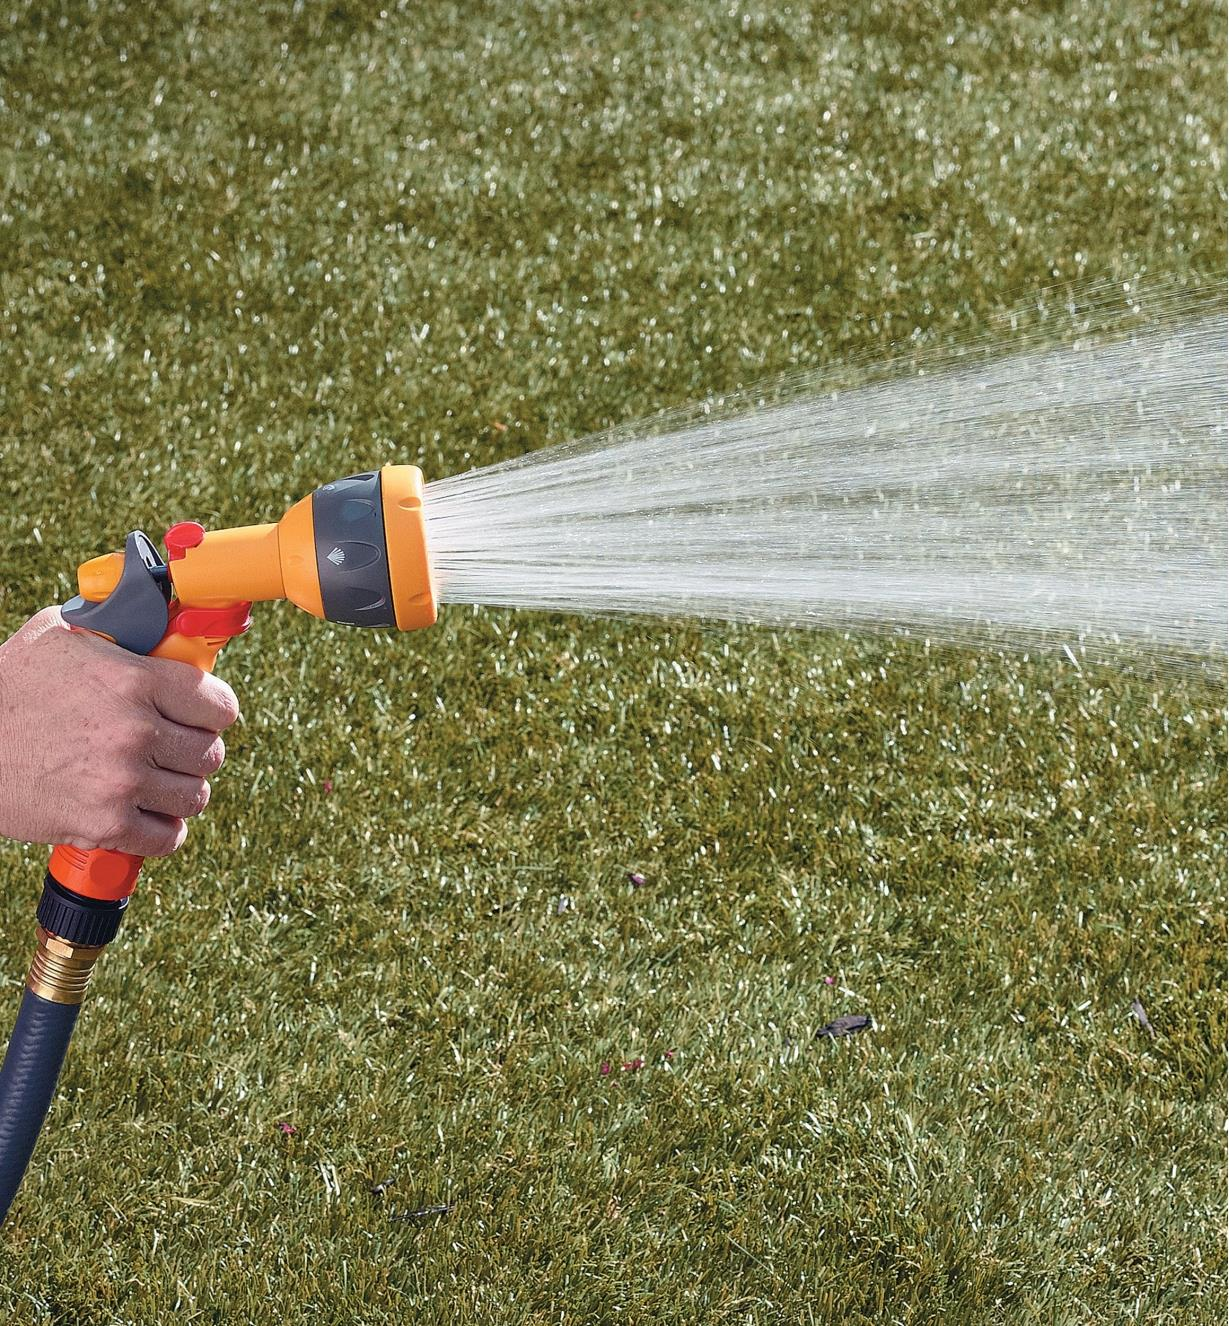 Hozelock Lightweight Sprayer spraying a gentle shower pattern